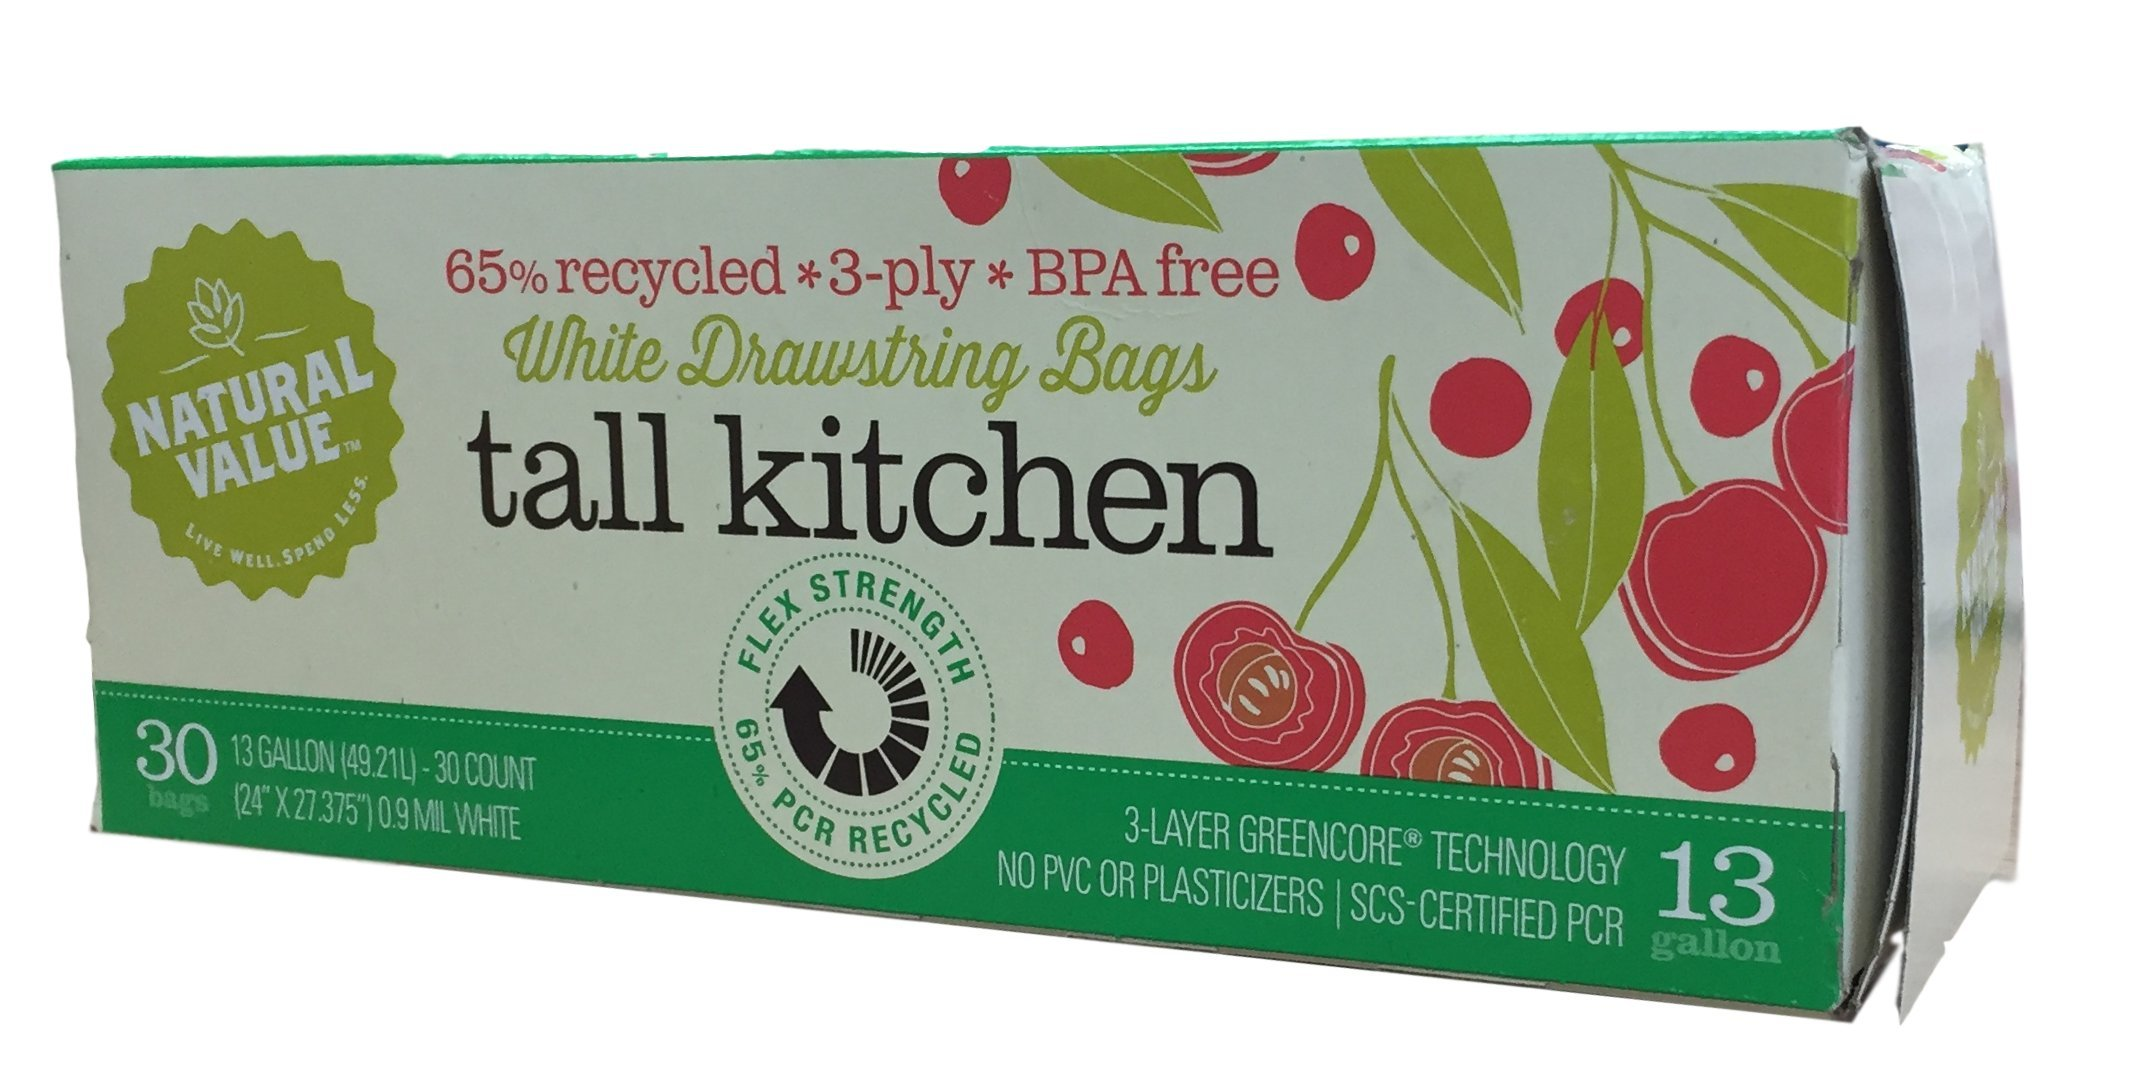 Natural Value Tall Kitchen Drawstring Bags, Embossed White, 30 Count